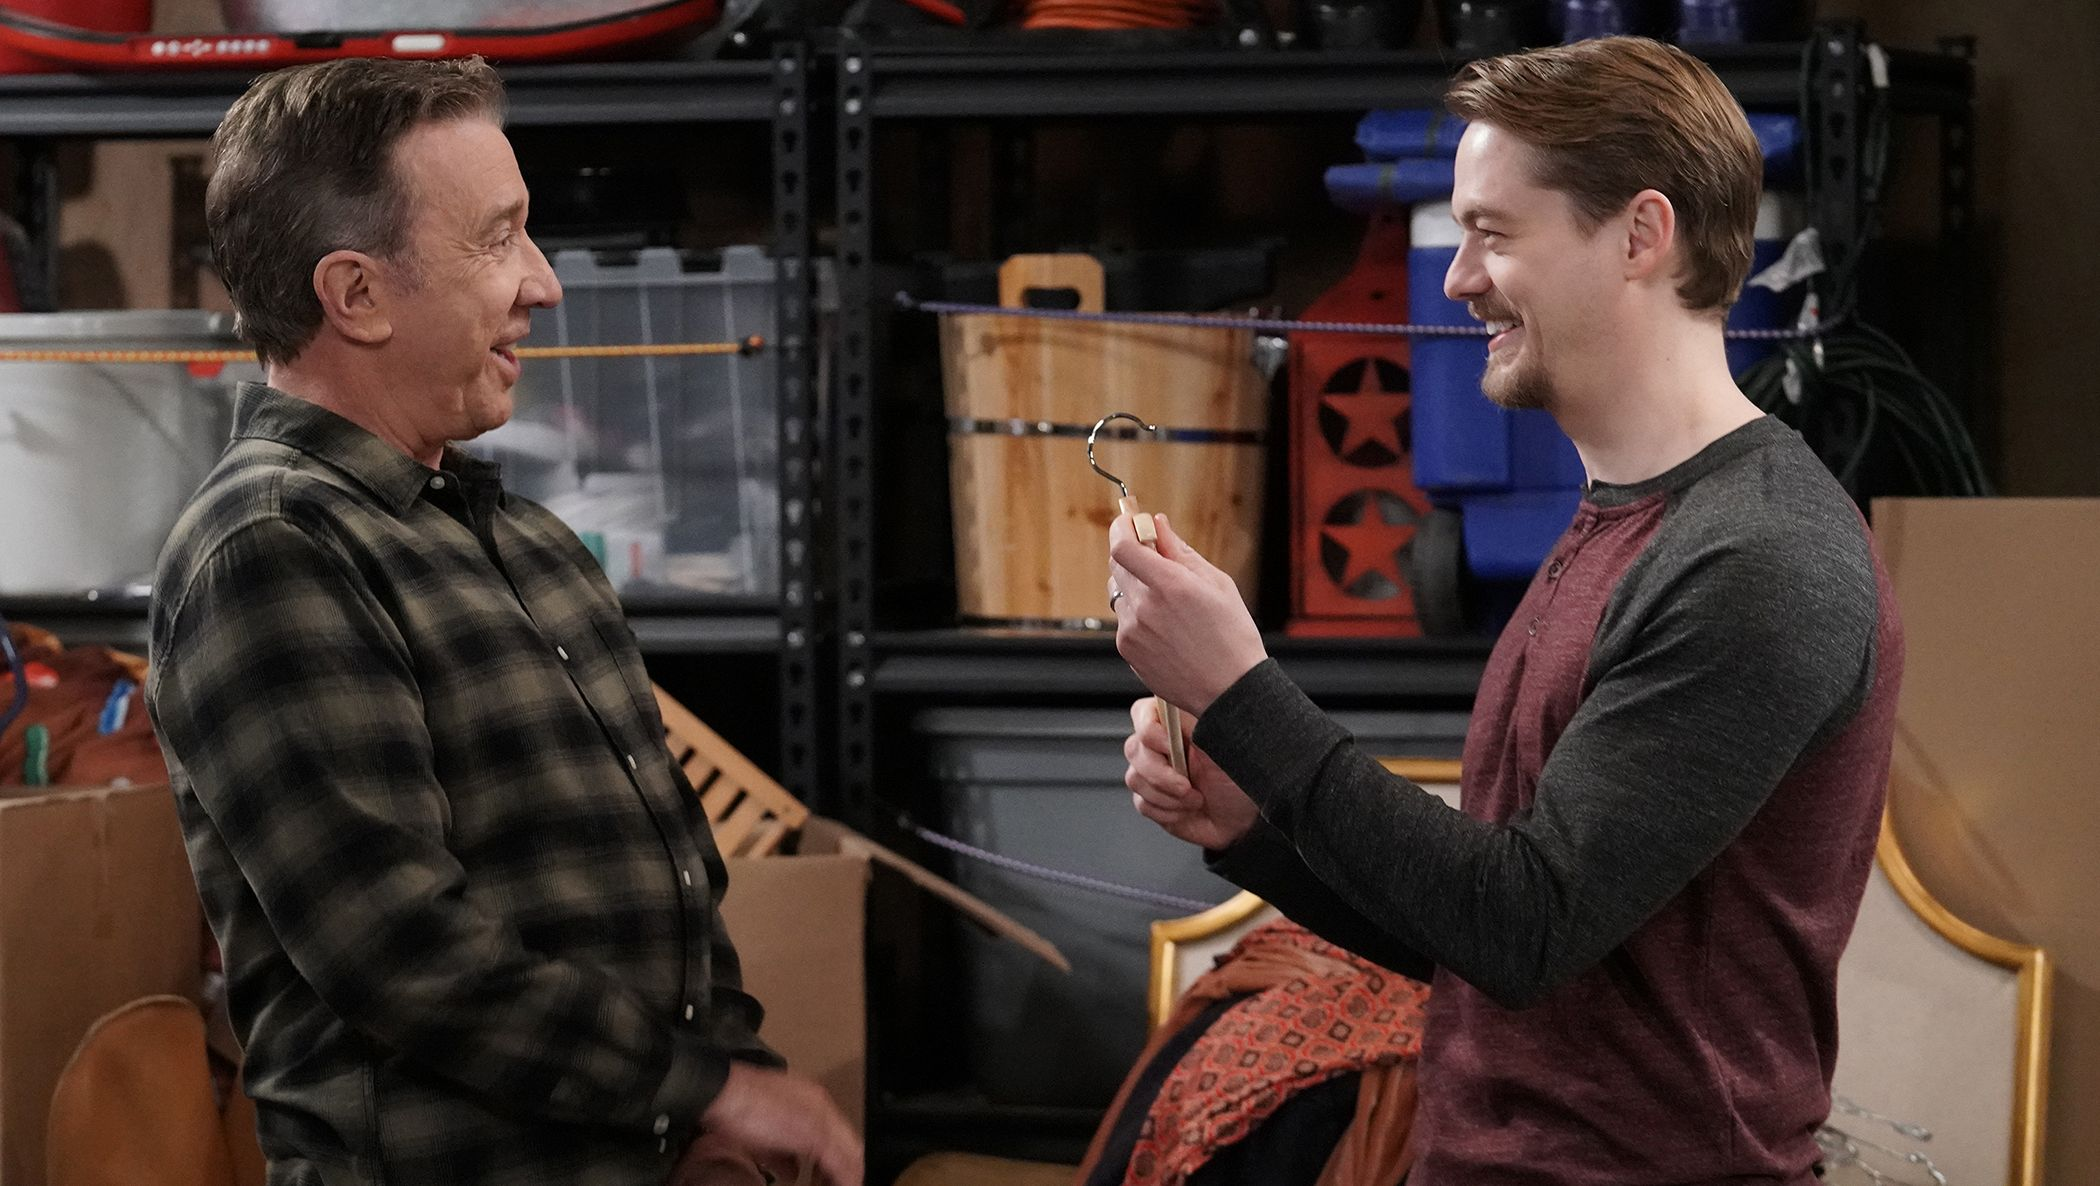 'Last Man Standing' Star Christoph Sanders Was Just Cast in Another Major Movie